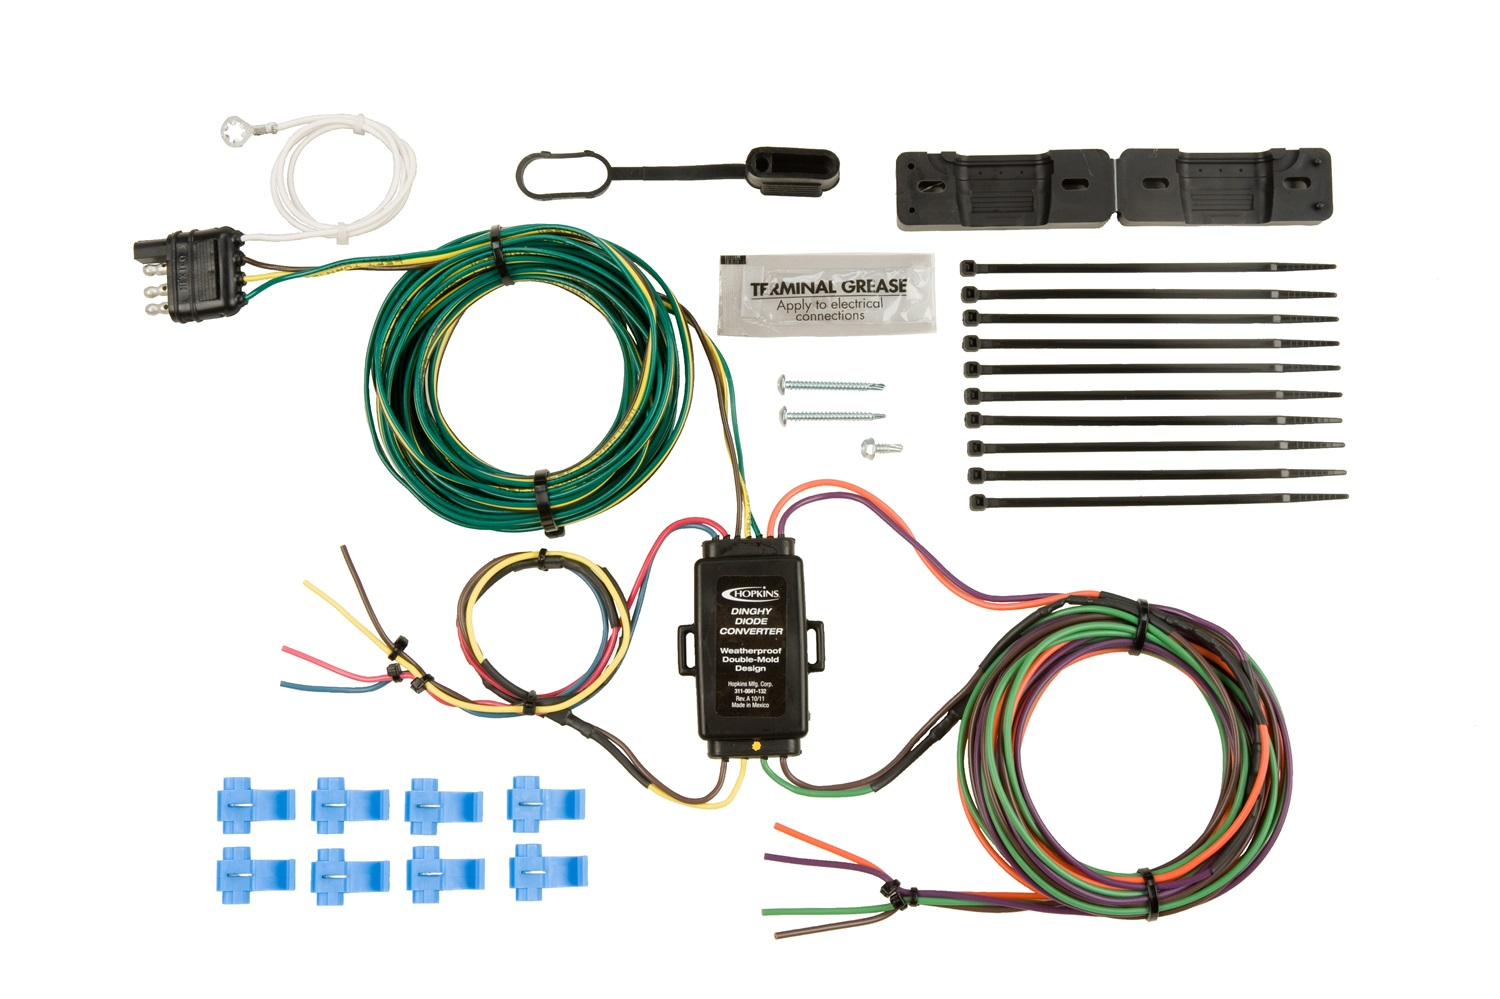 hopkins towing solution 55999 plug in simpler vehicle to trailer rh walmart com Trailer Wiring Kit 7-Way Trailer Plug Wiring Diagram